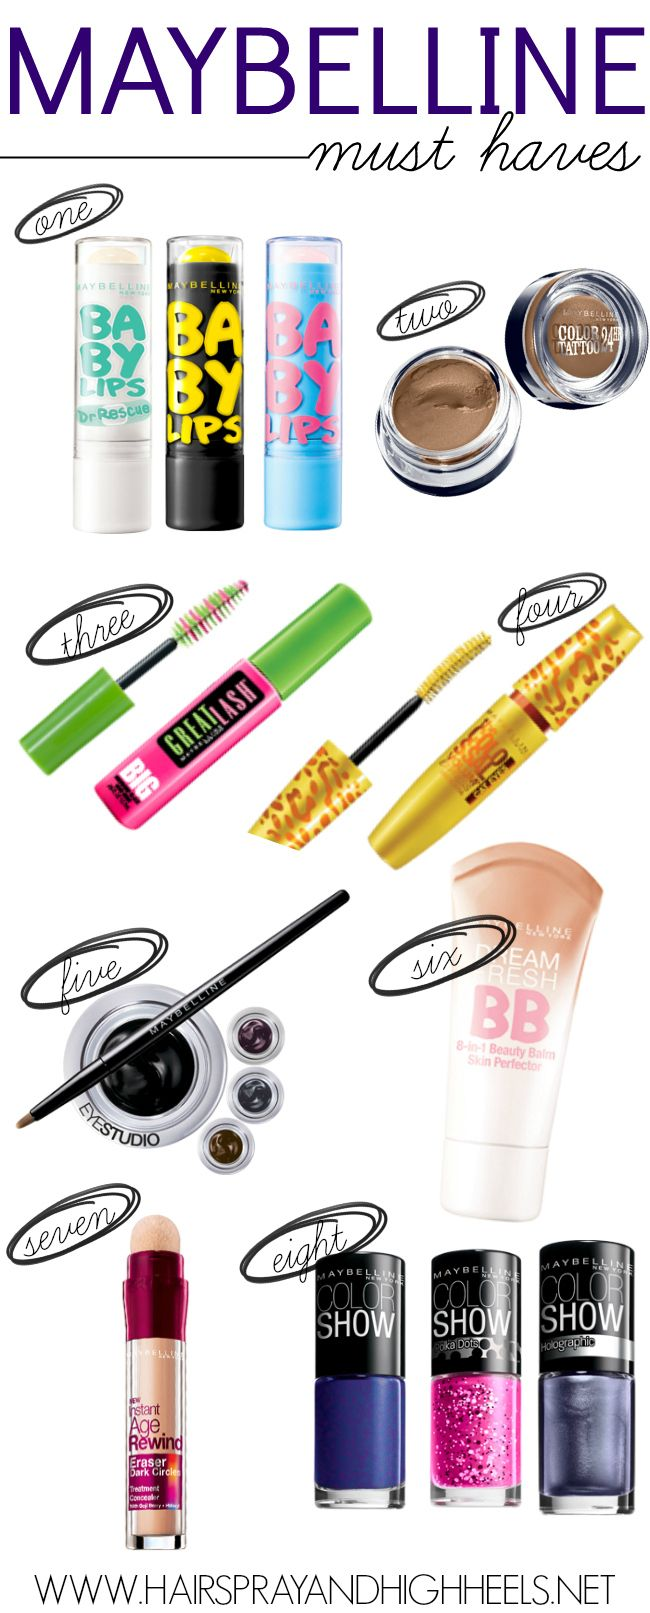 A collection of the best Maybelline products in drugstore beauty. The best Maybelline products including eyeliner, baby lips, mascara, concealer & more.